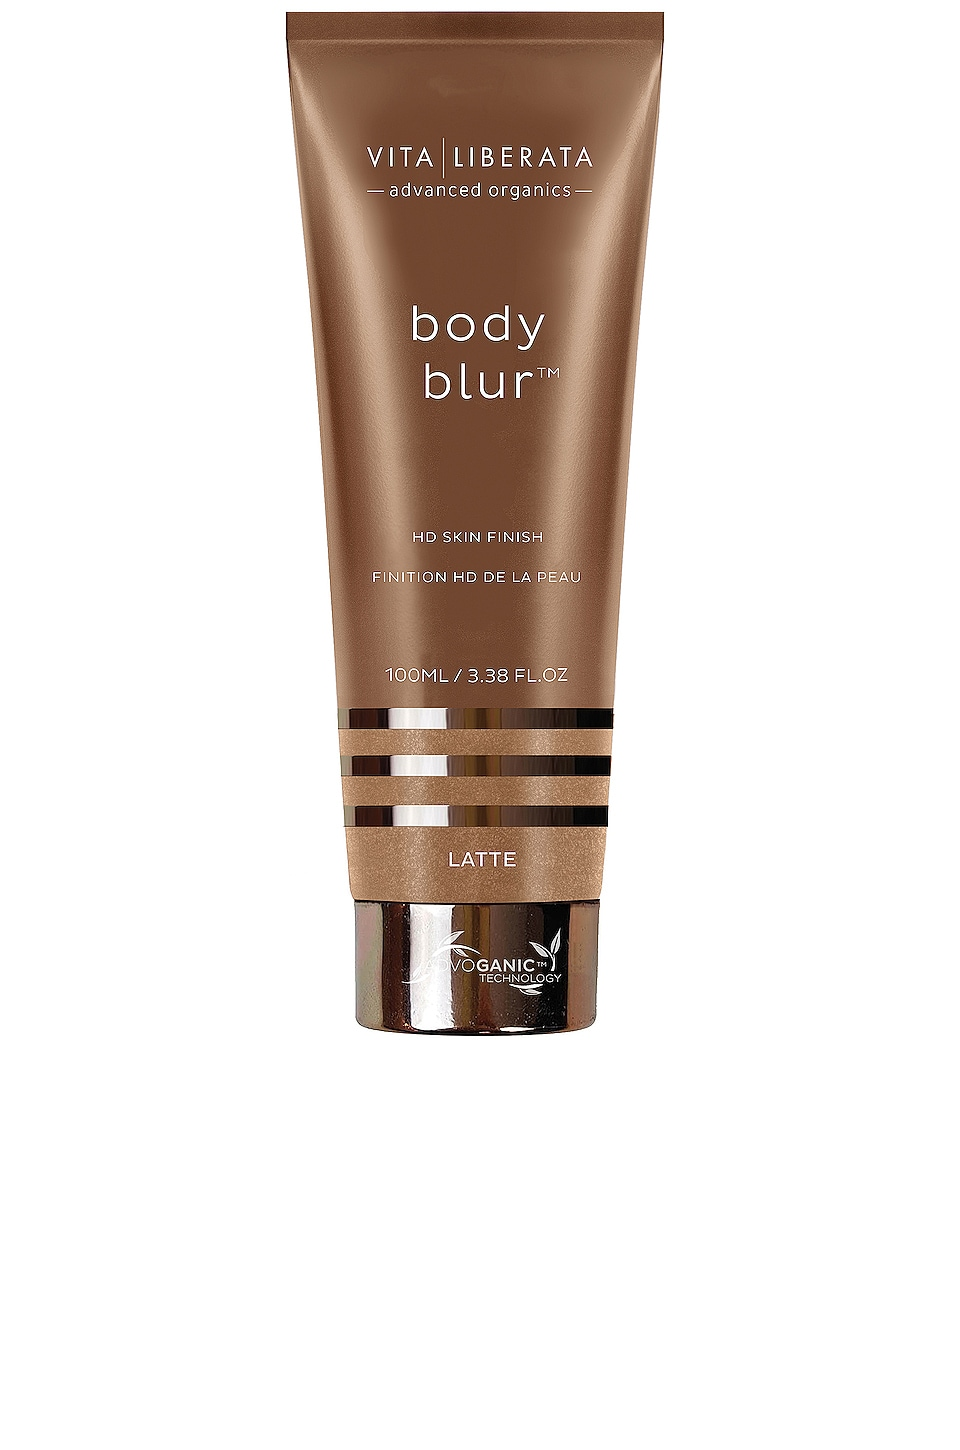 Vita Liberata Body Blur Instant HD Skin Finish in Latte